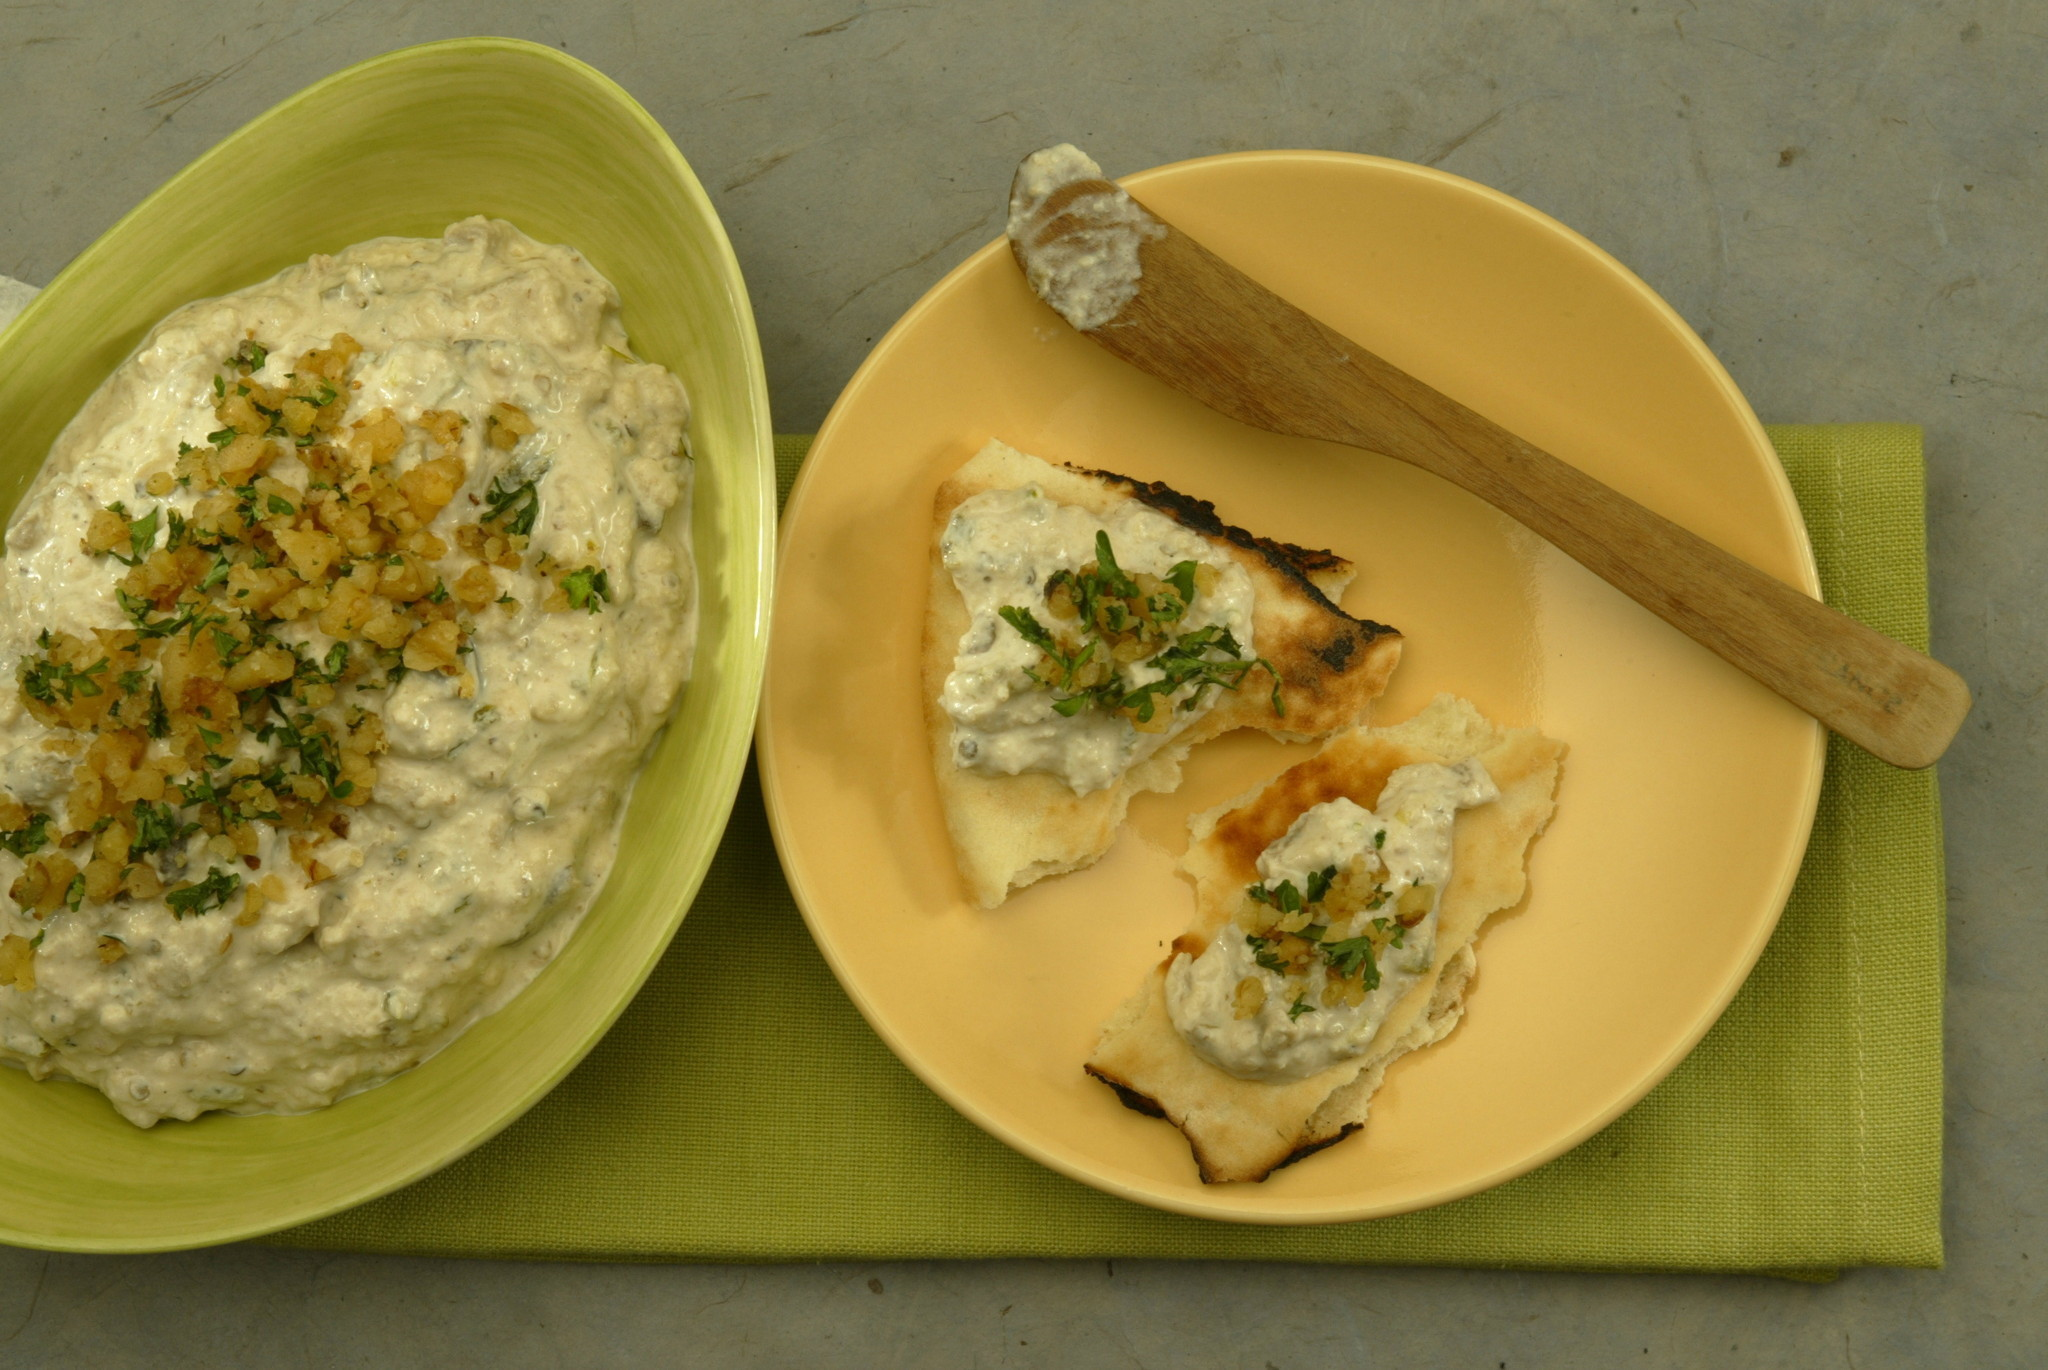 Photos: 97 great Thanksgiving recipes - Roasted eggplant dip with walnuts